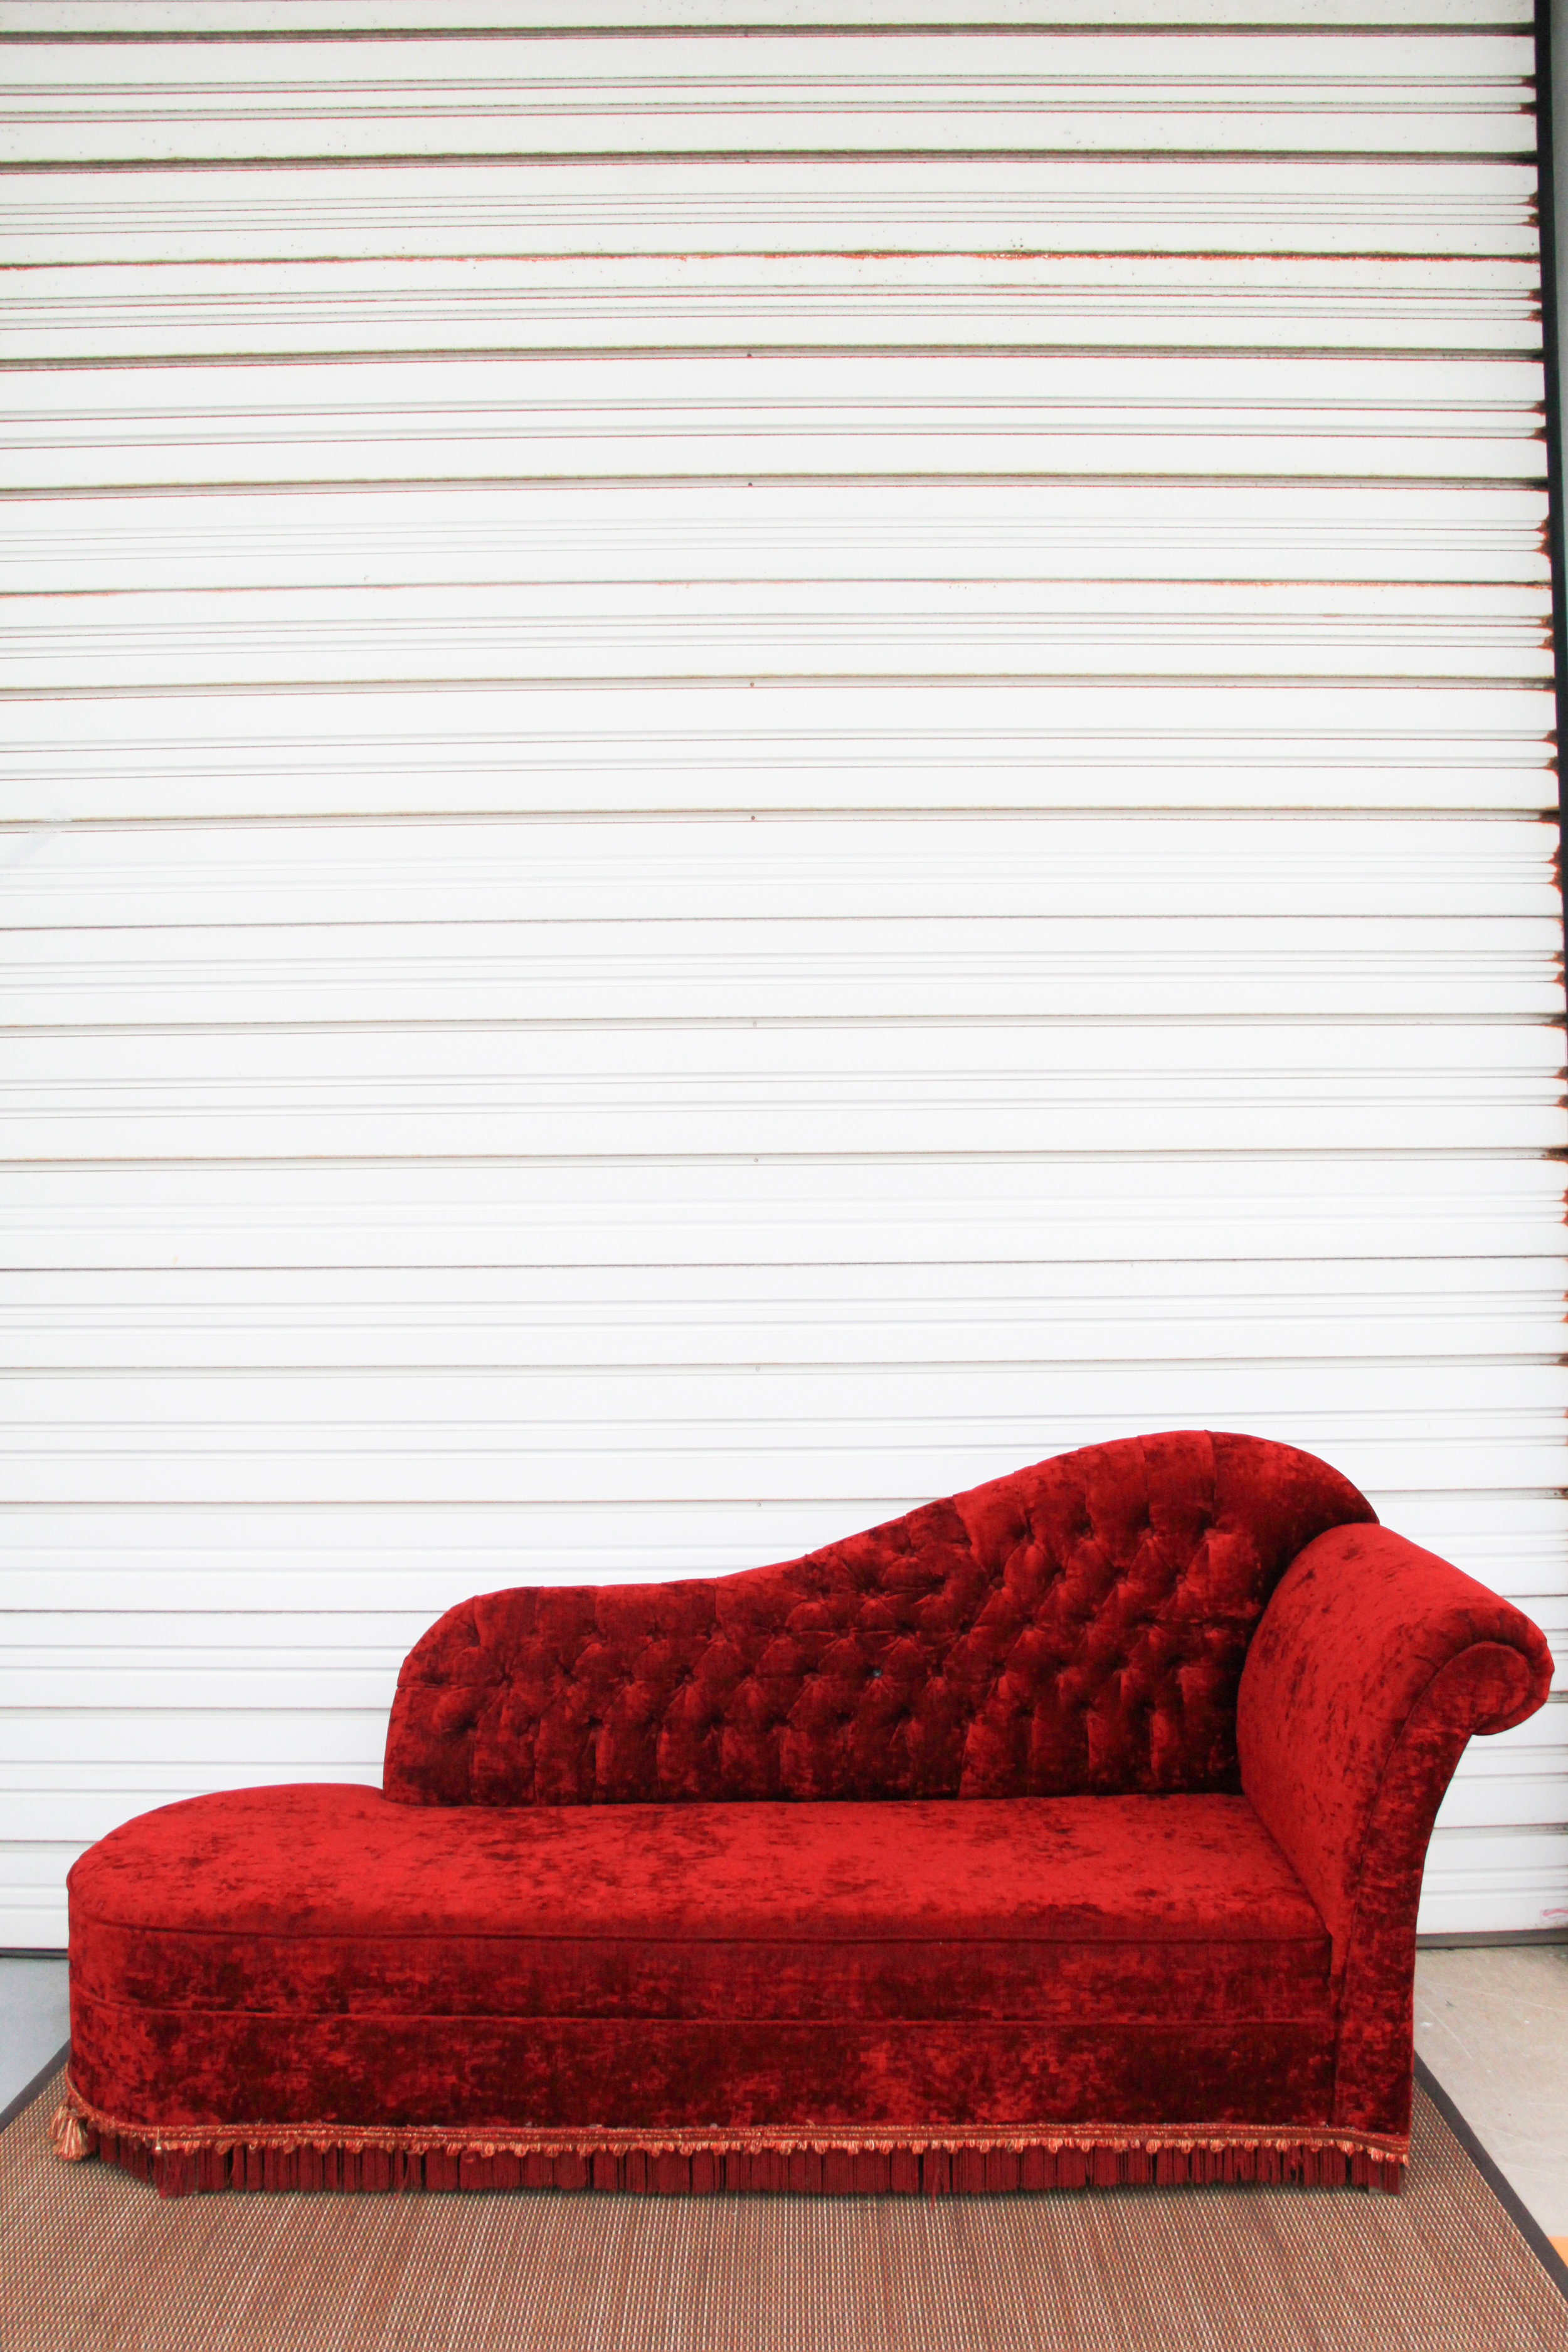 Red Fainting Couch